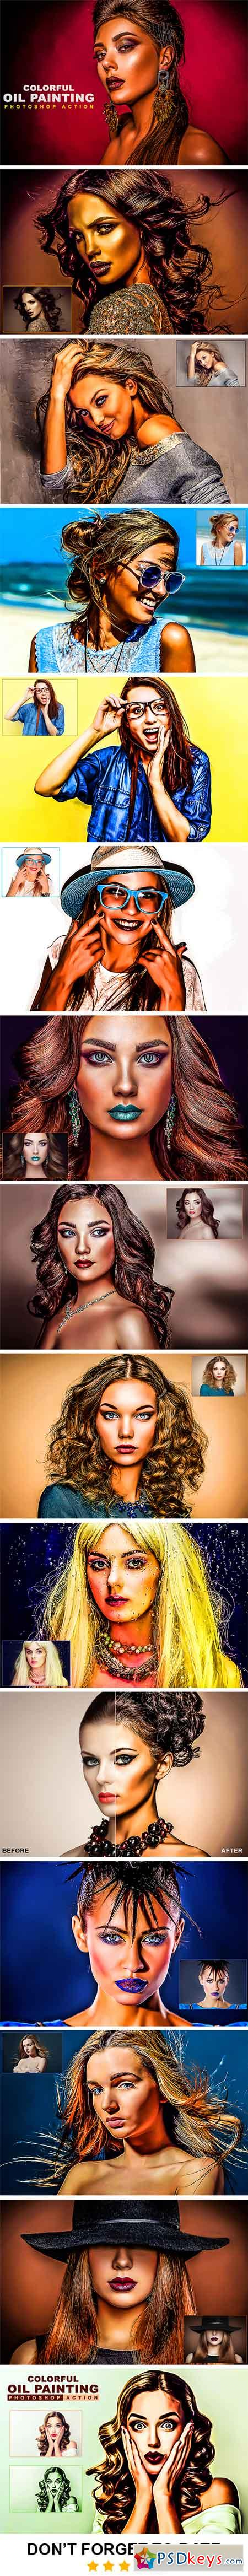 Colorful Oil Painting Photoshop Action 22933832